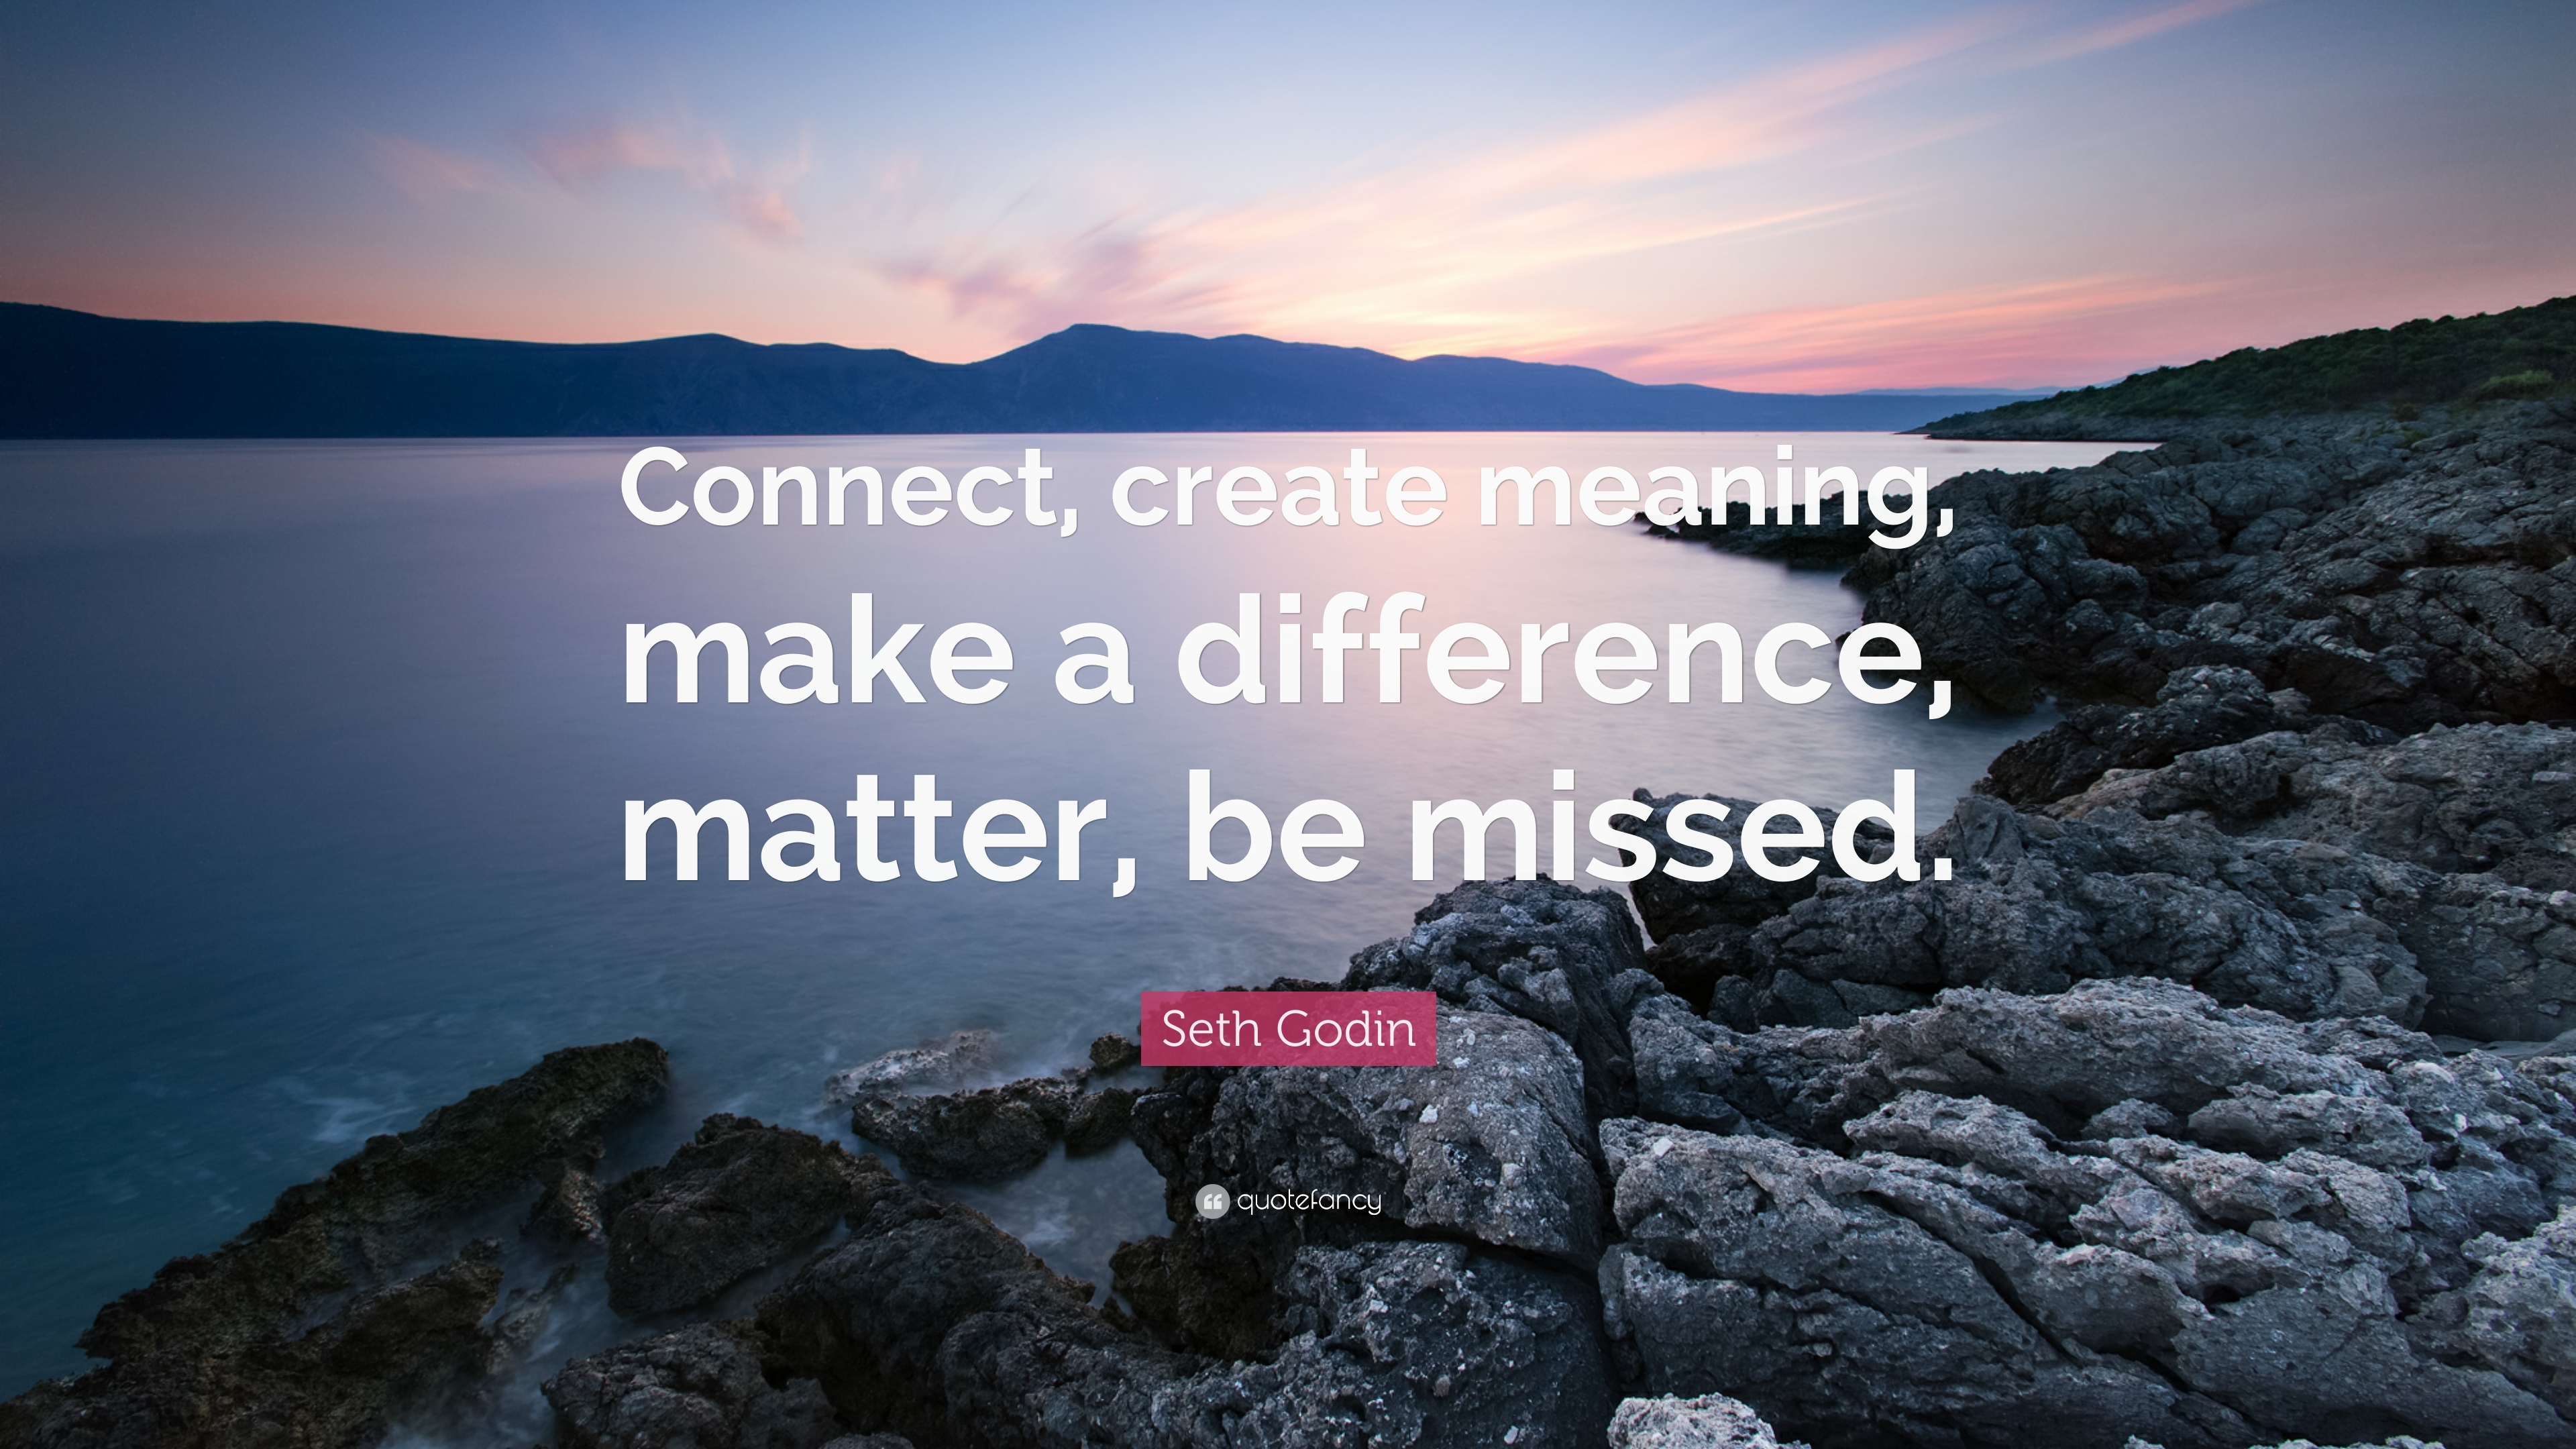 seth godin, personal branding, connect, create meaning